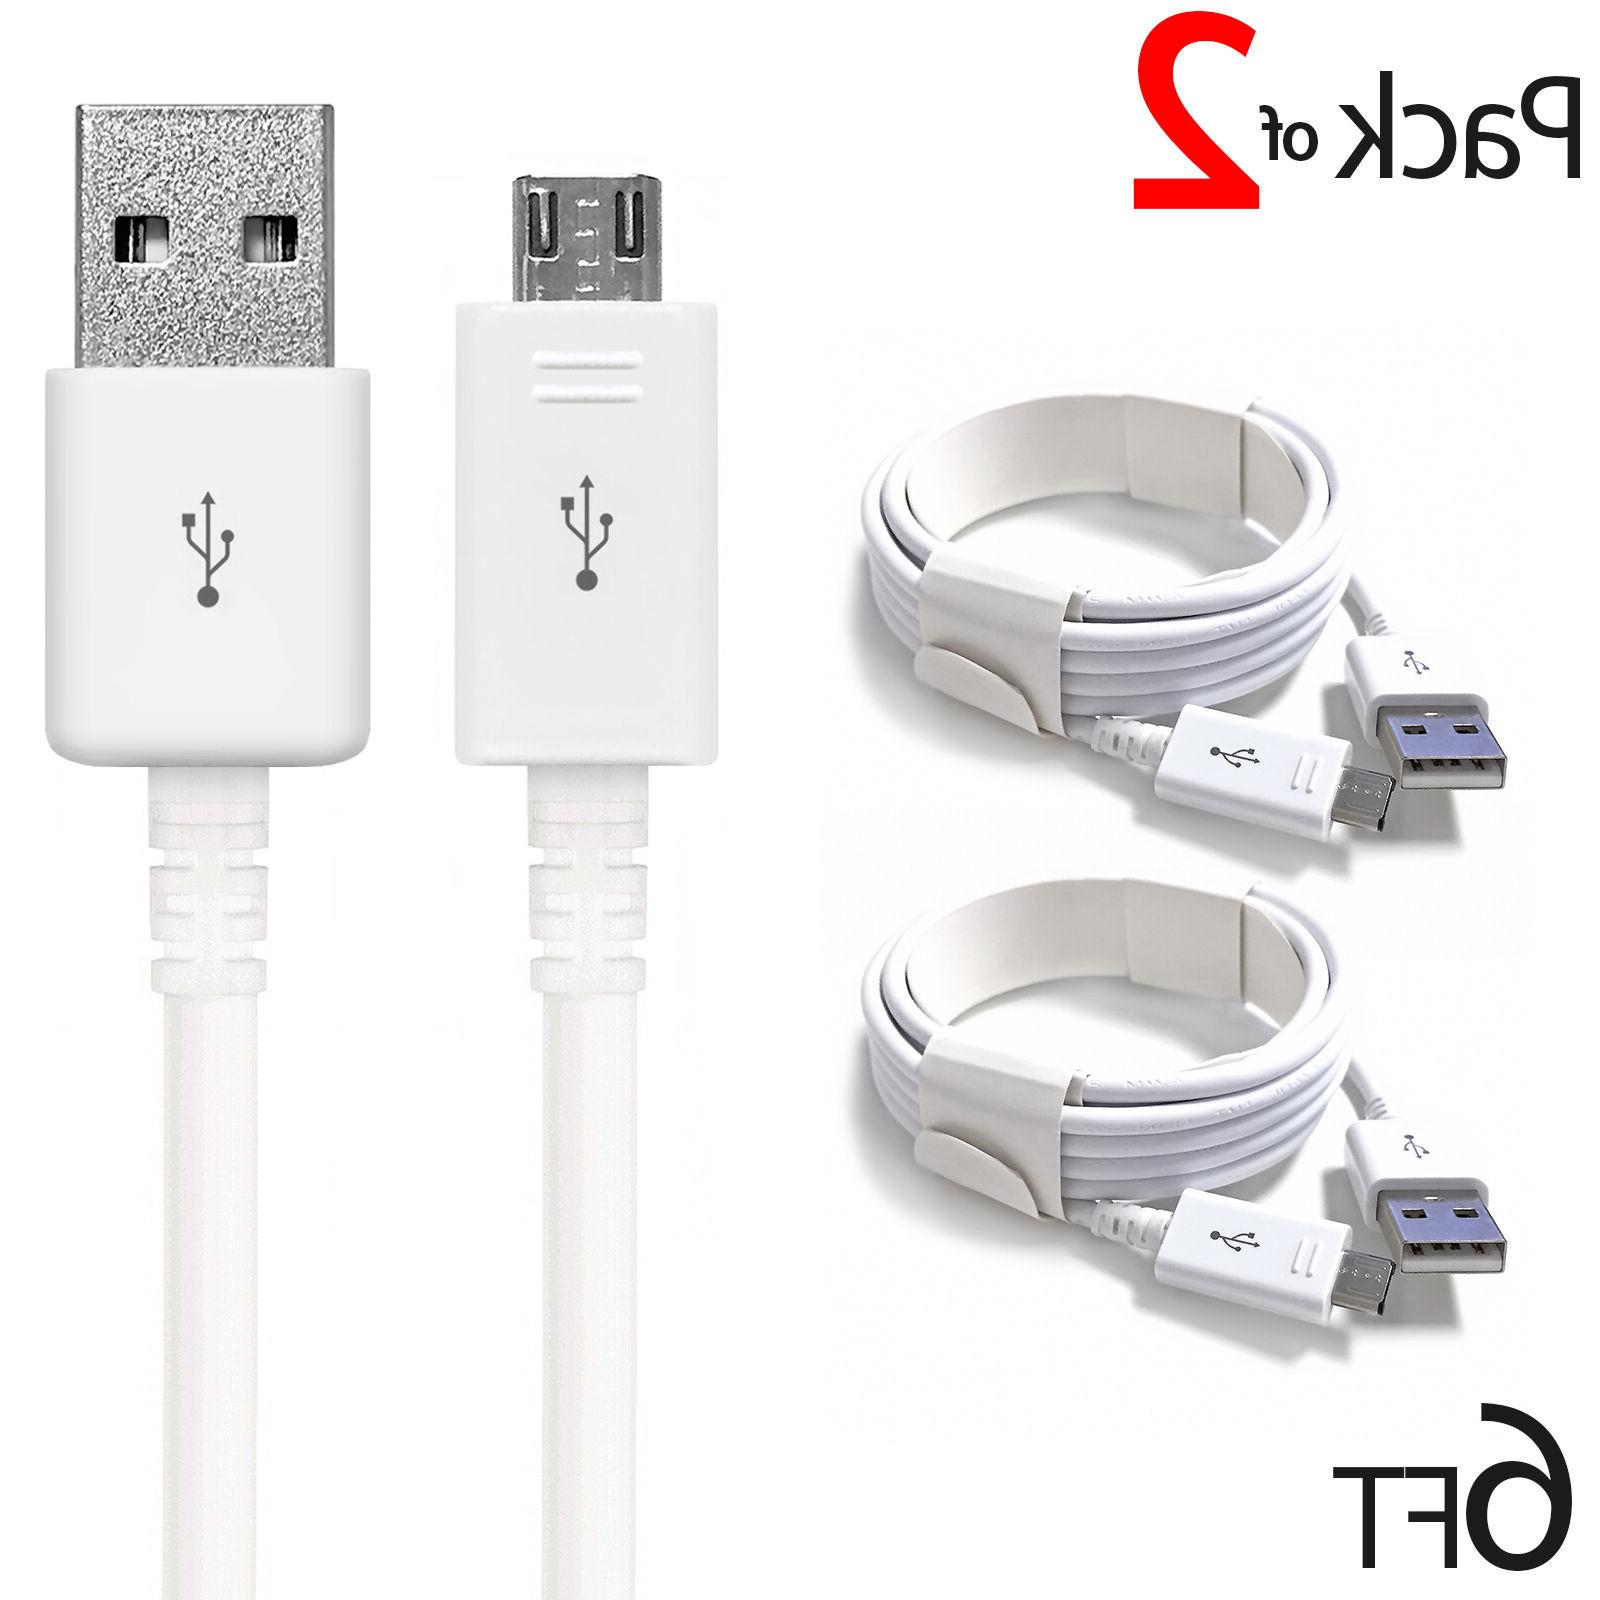 PACK OF 2 MICRO USB CHARGER FAST CHARGING CABLE FOR SAMSUNG